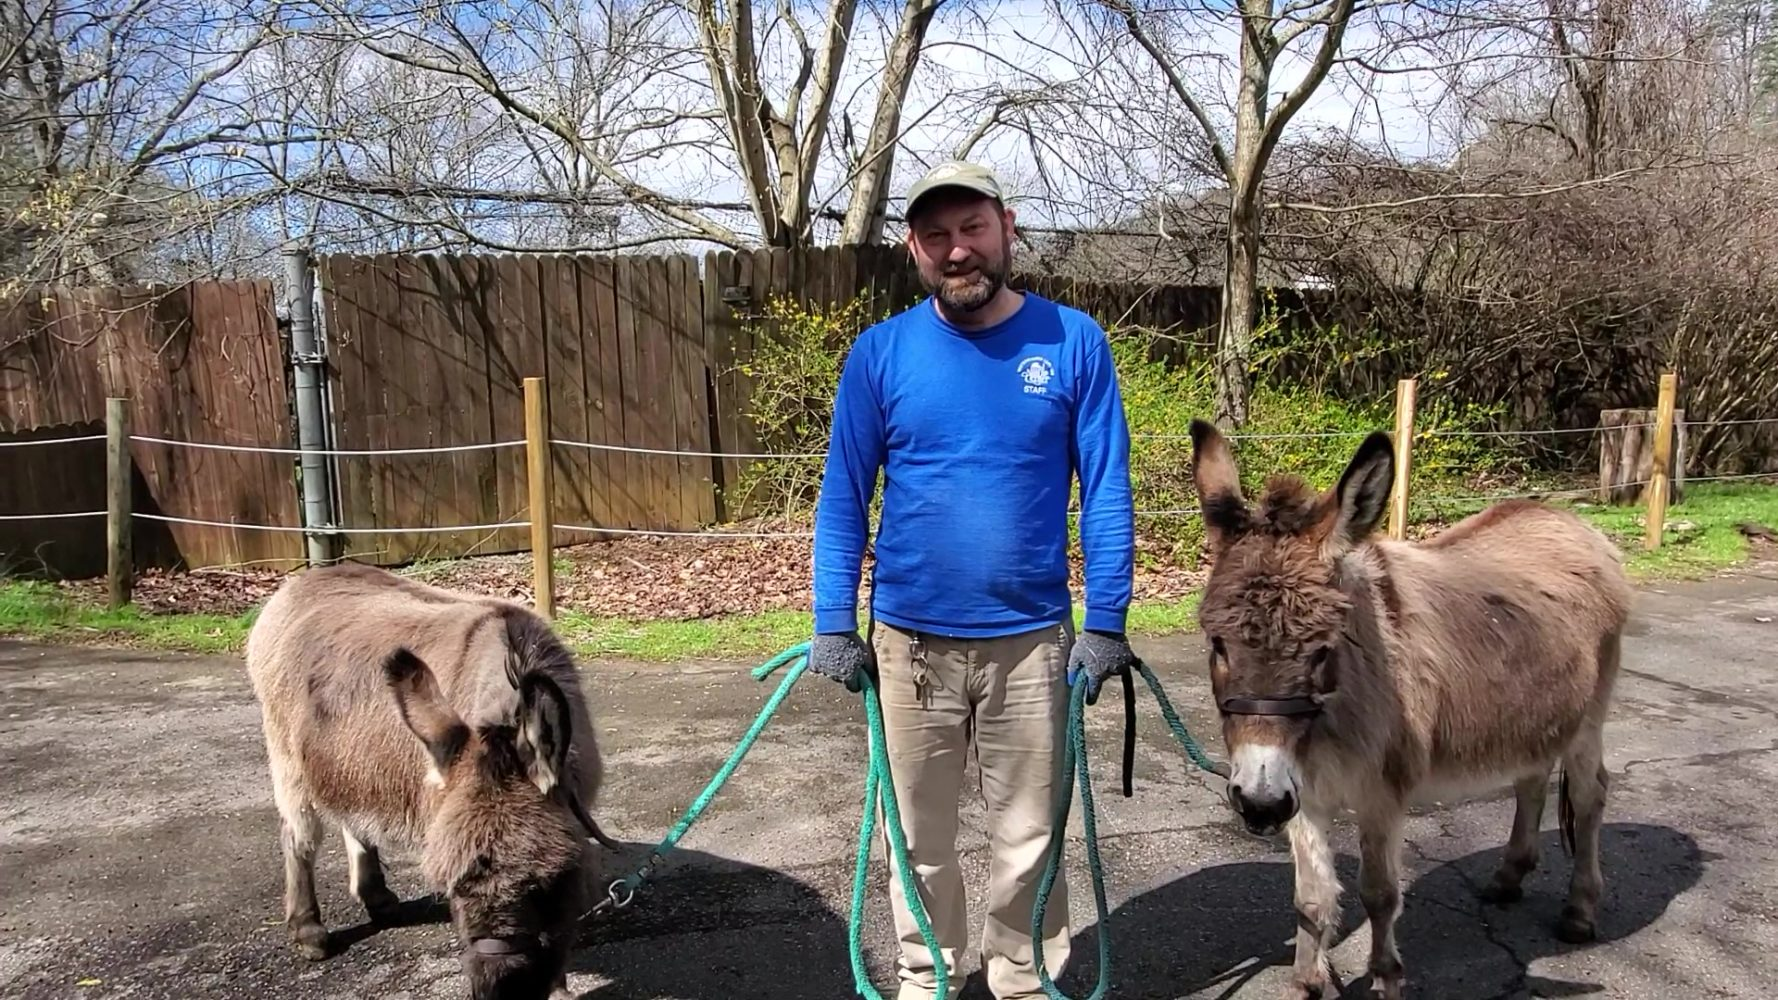 A Nature Center employee guides two donkeys.